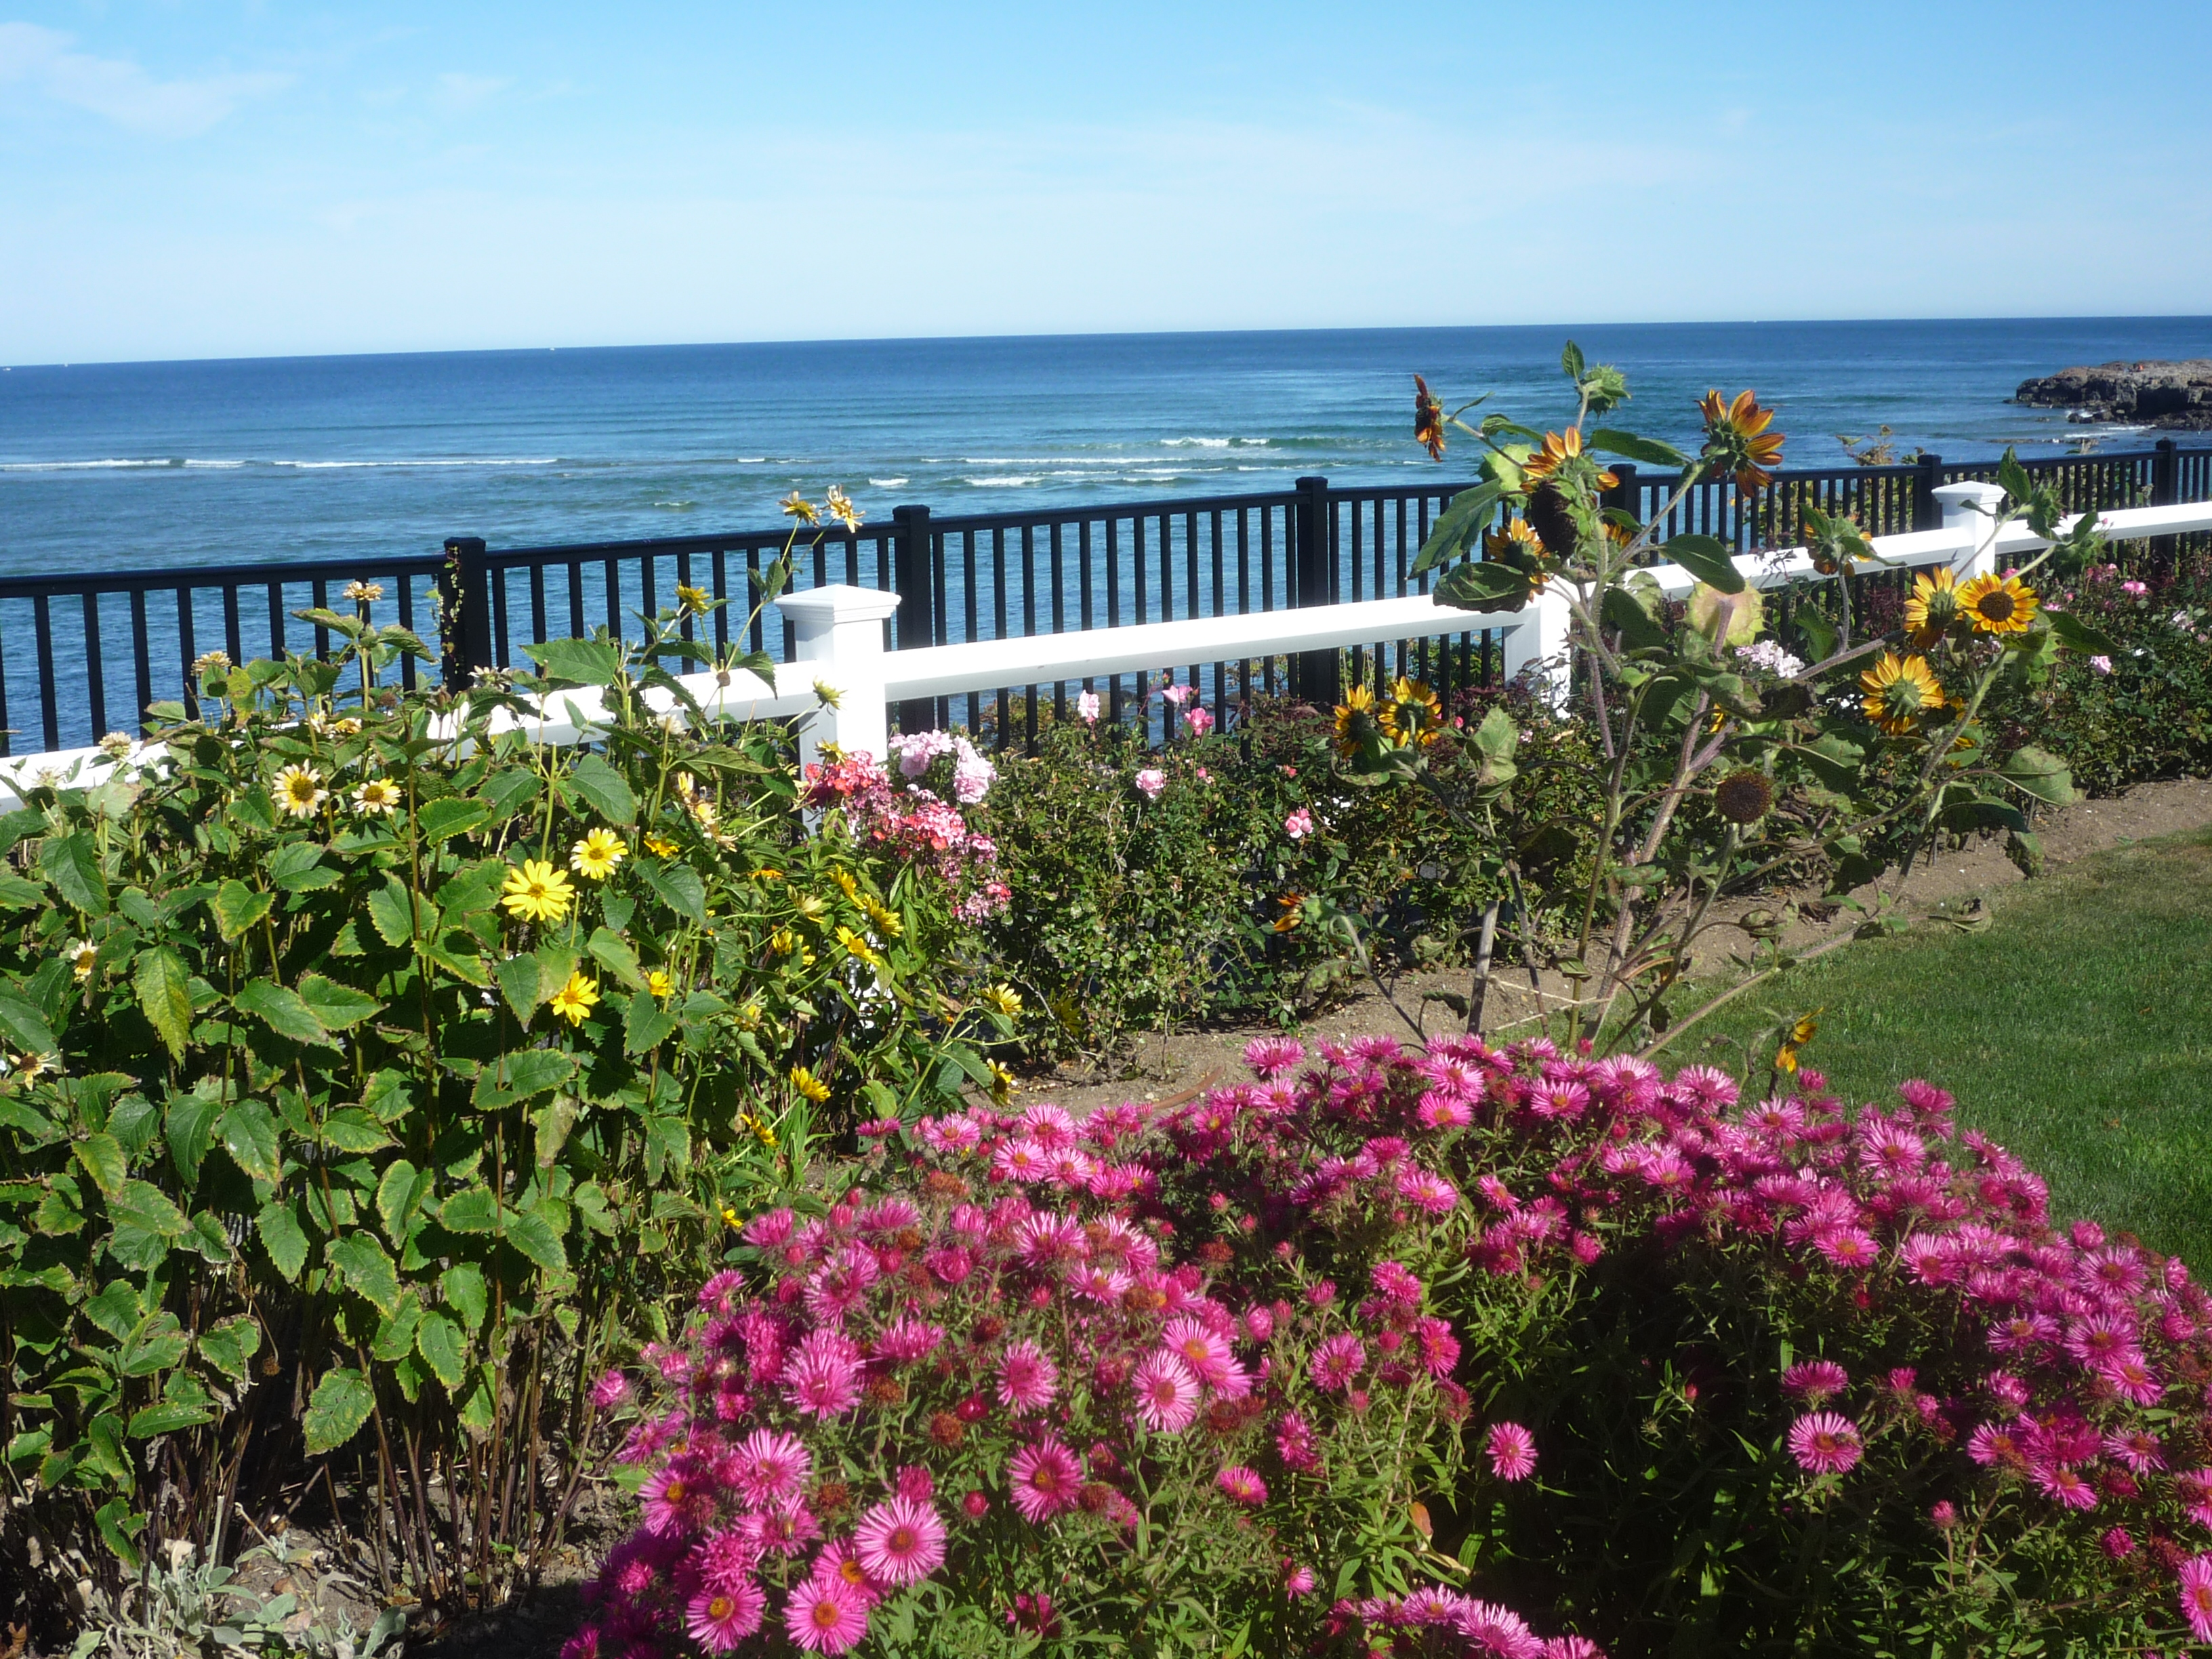 Image of Marginal Way, Ogunquit, Maine